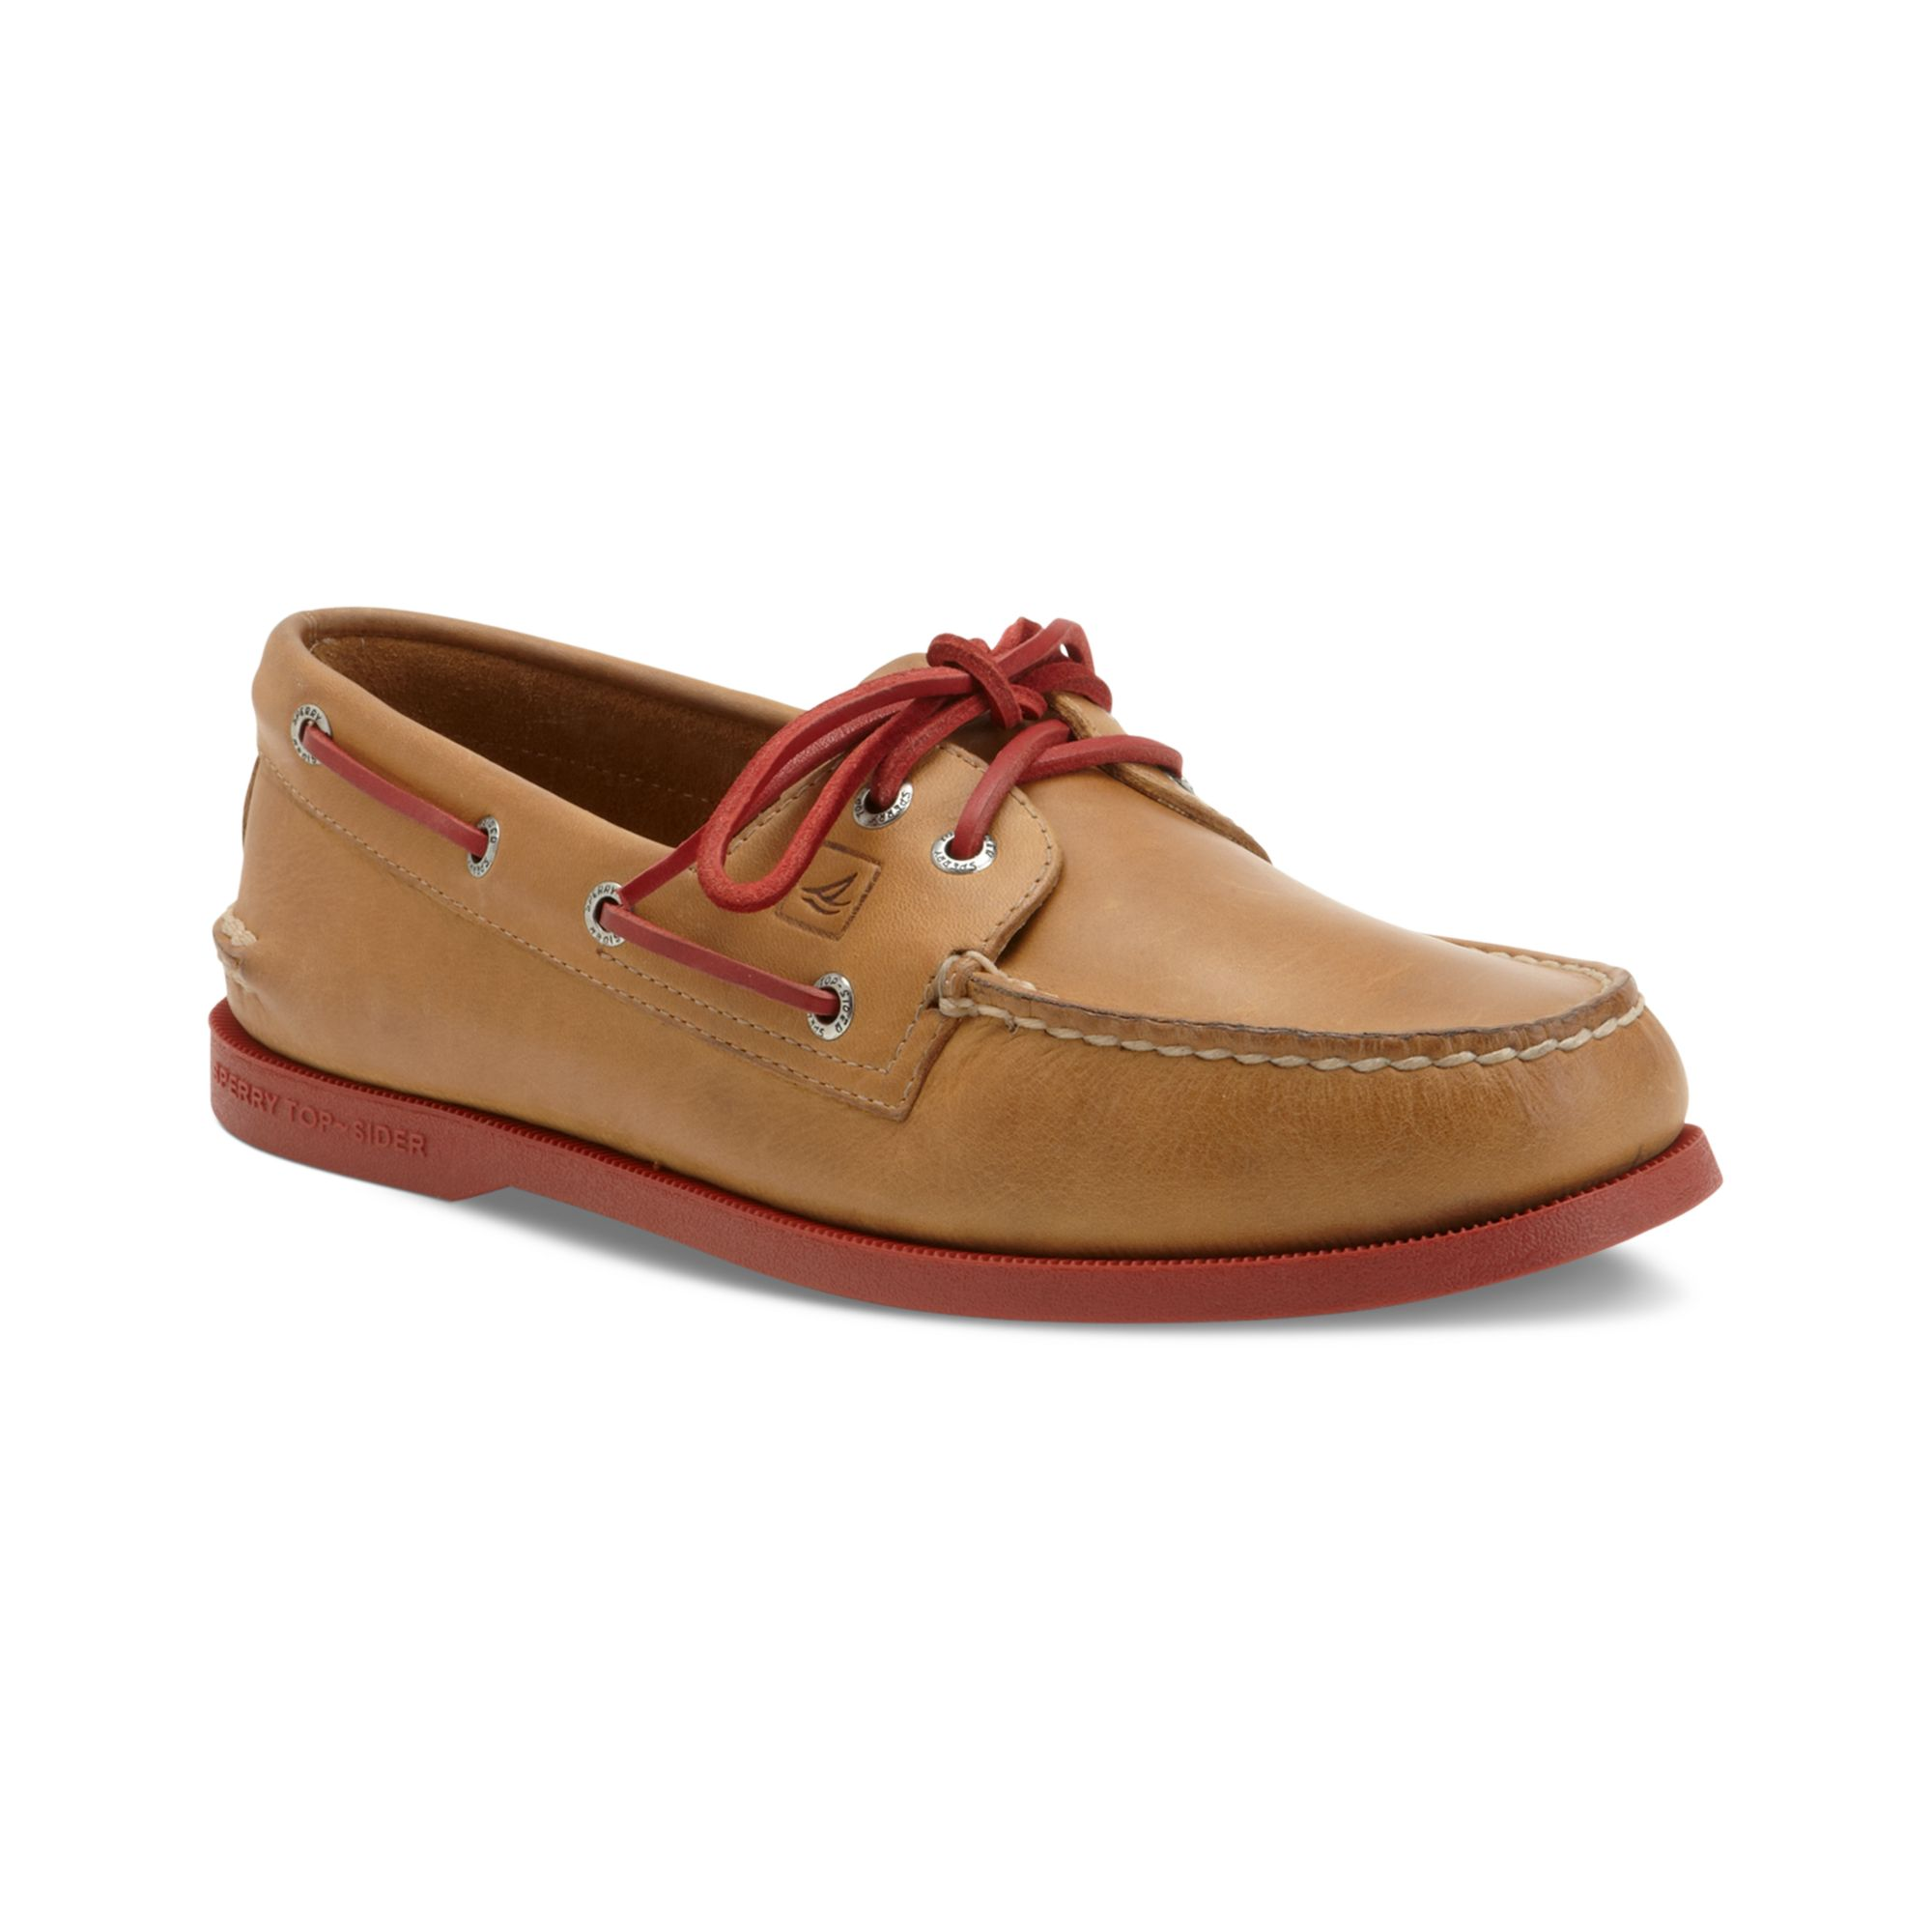 Boat shoes are more popular than ever, and these are our classics - always in style, crafted using premium materials. And if you love the look of these women's leather boat shoes, try designing your own for a one-of-a-kind pair!